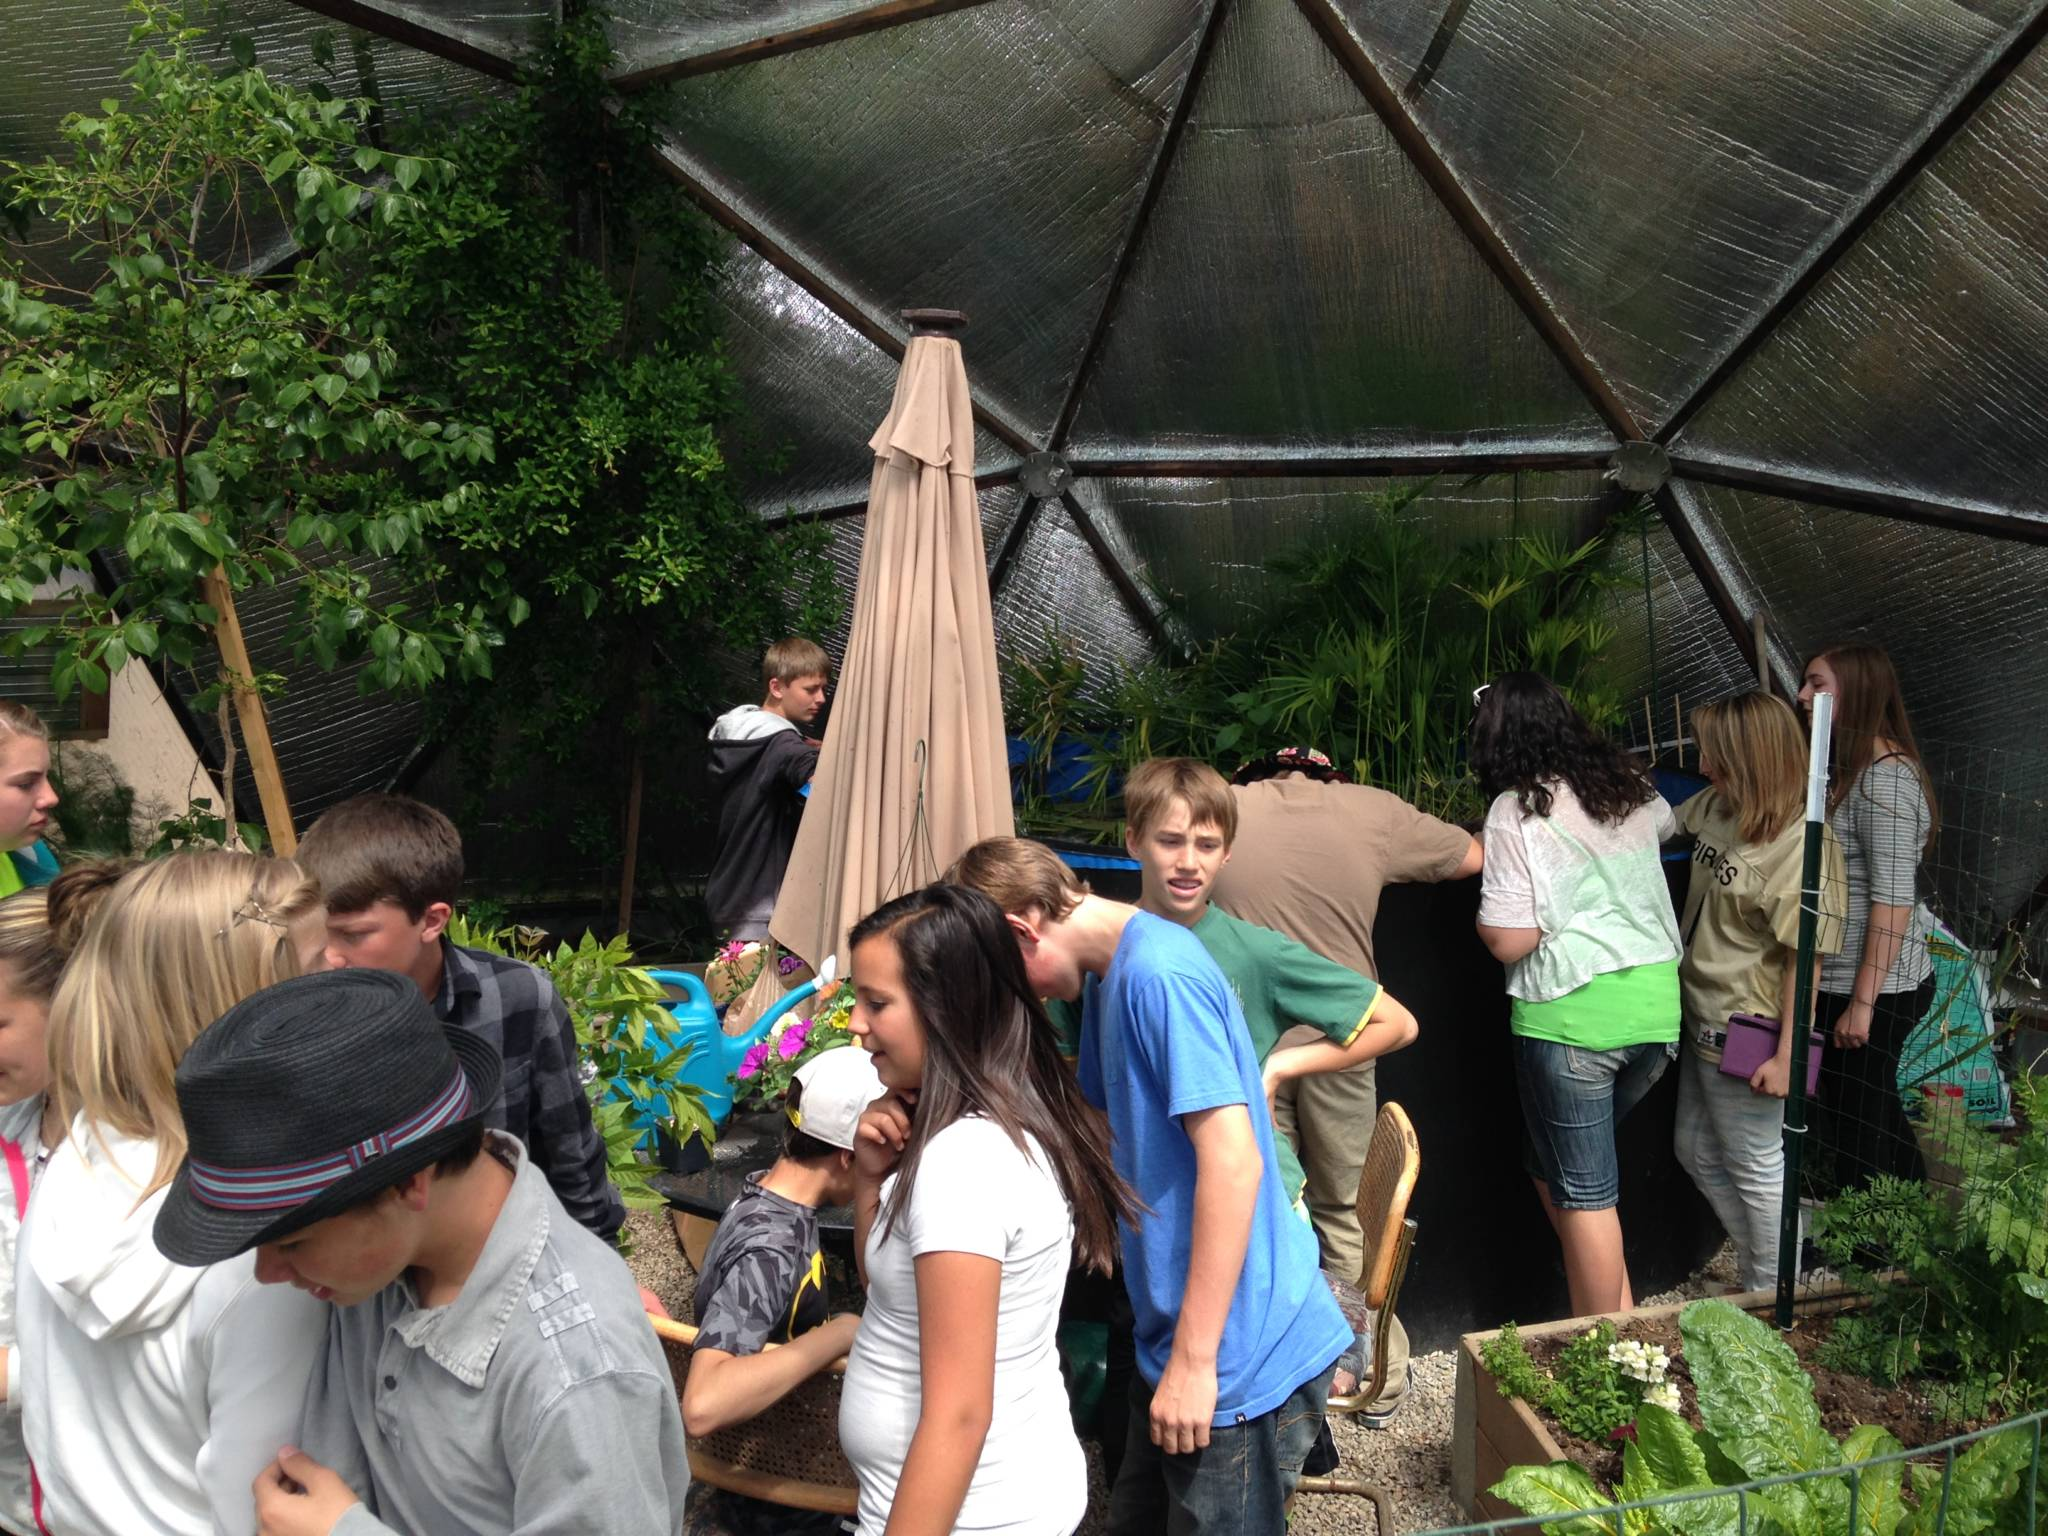 009-community-greenhouse-33-growingspaces-2